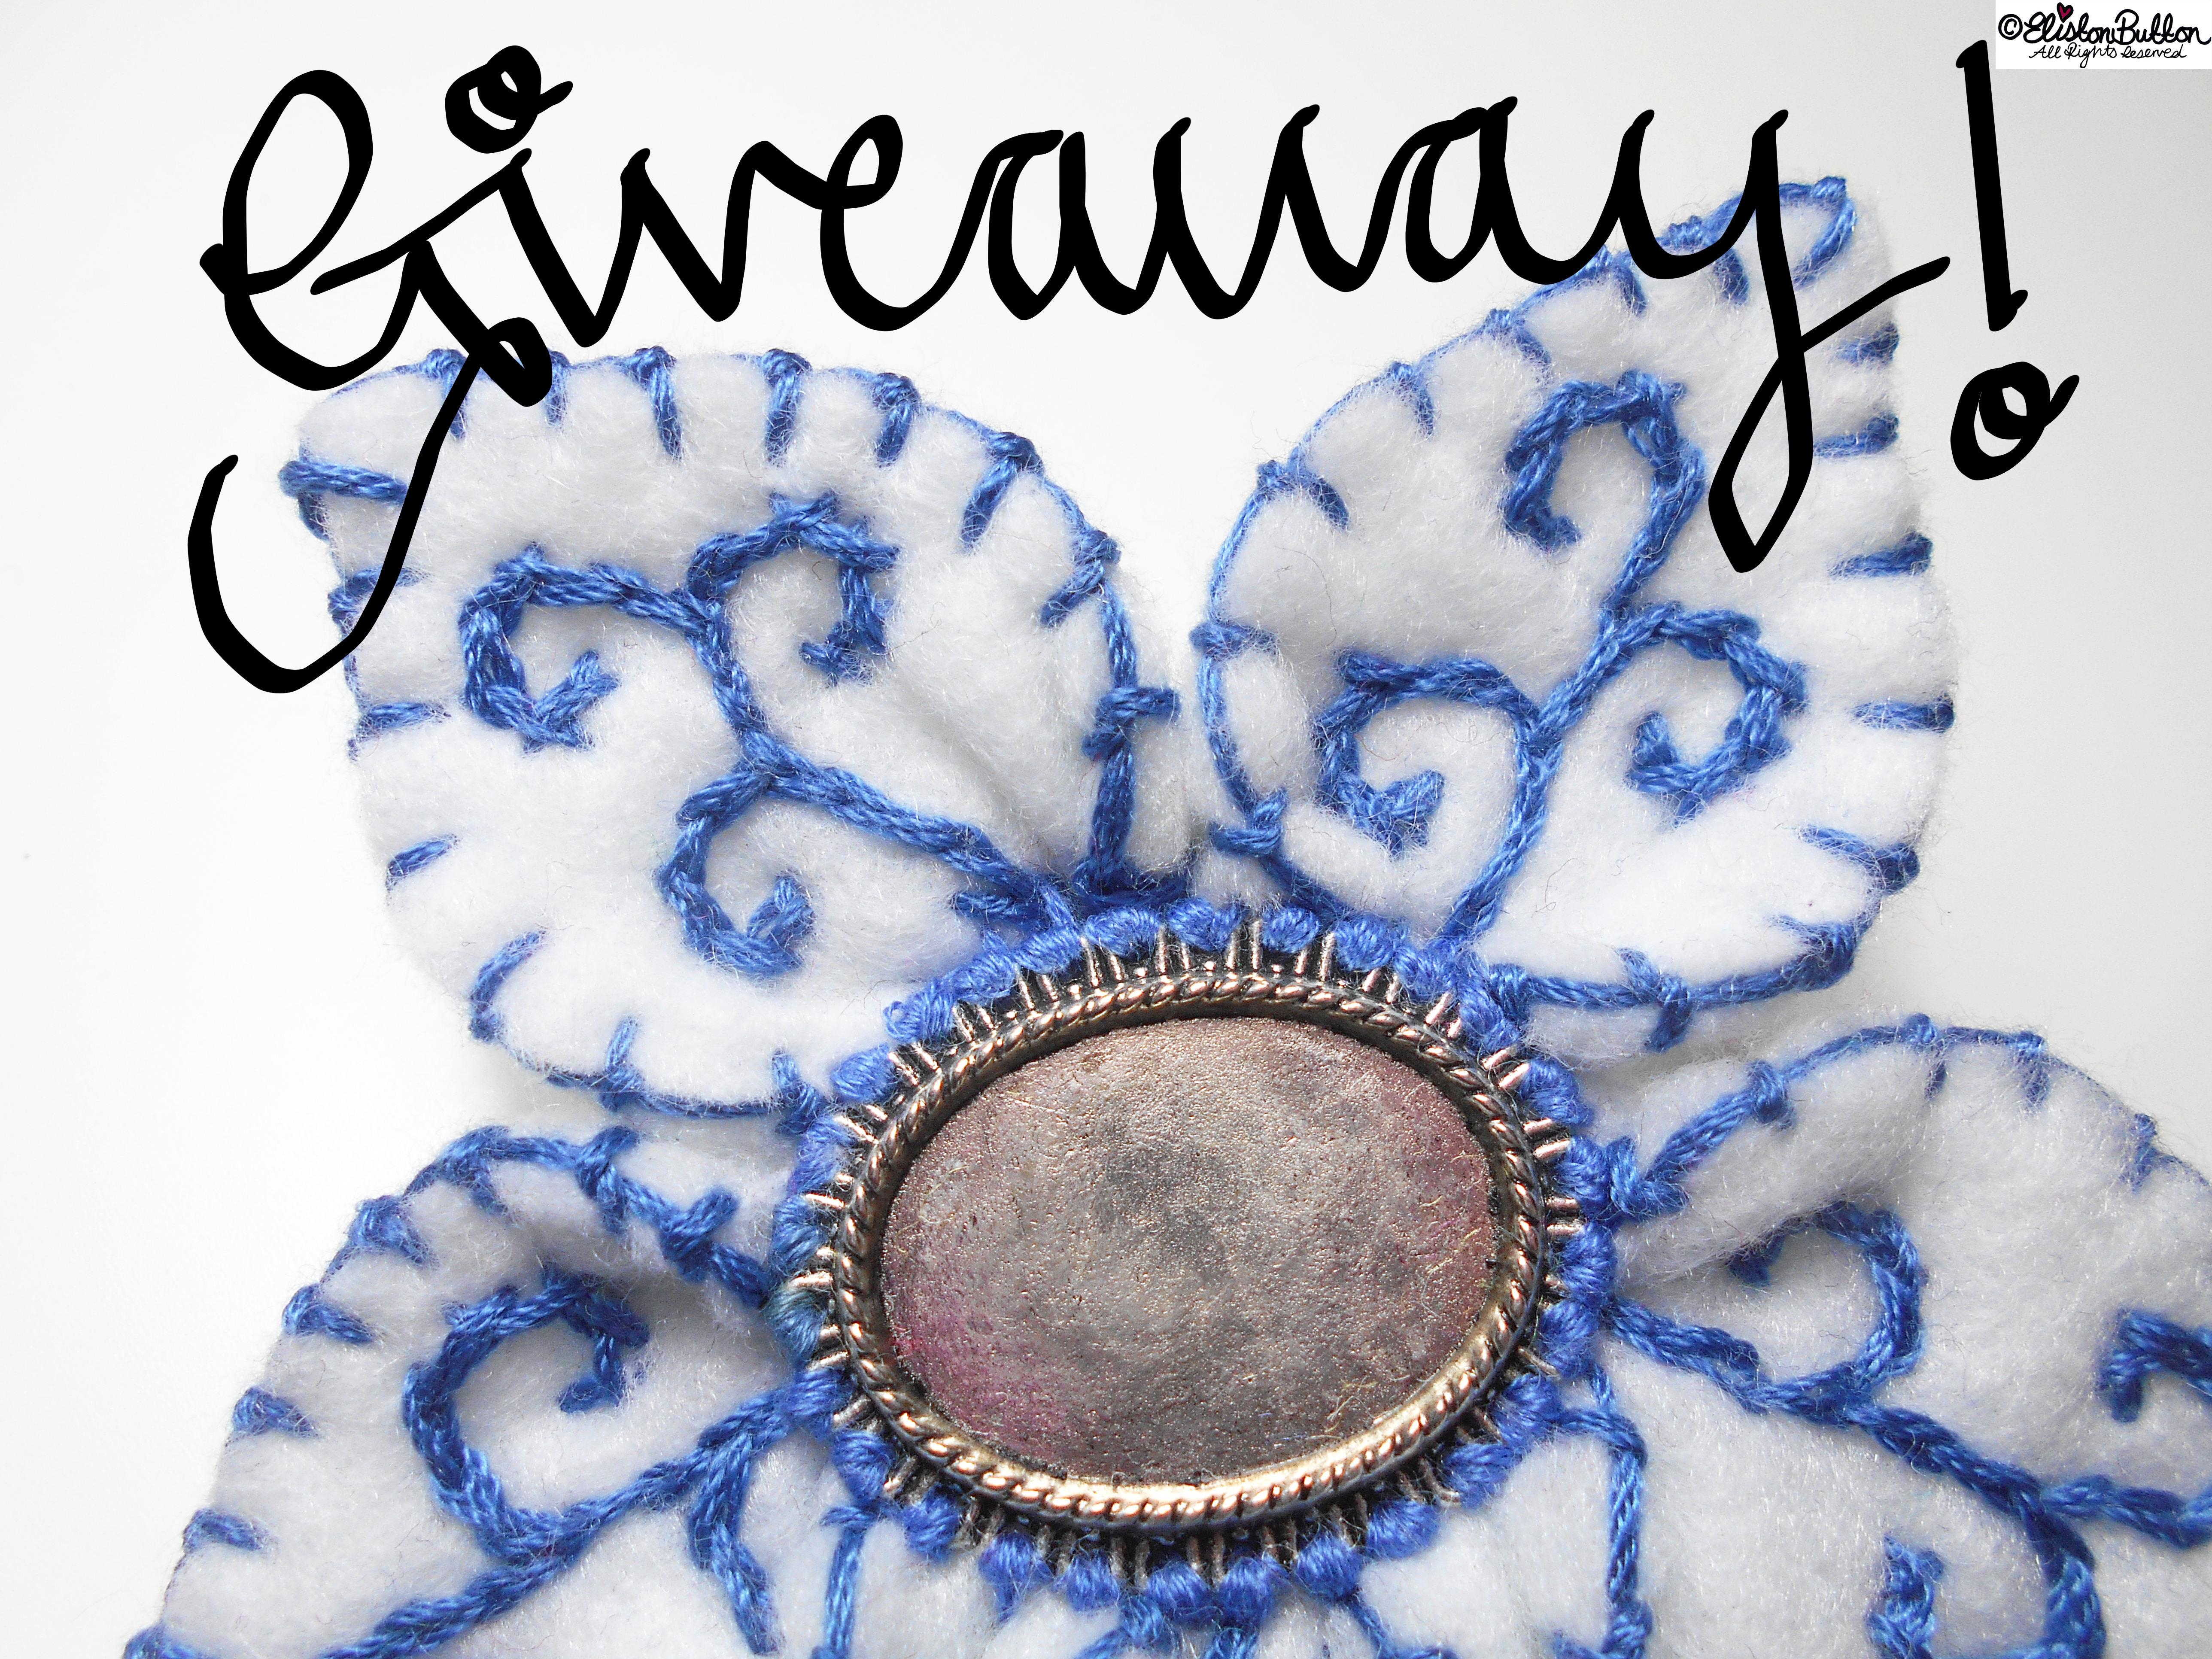 Blue and White Brooch Giveaway! - Eliston Button is One Year Old! (And a Giveaway!!) at www.elistonbutton.com - Eliston Button - That Crafty Kid – Art, Design, Craft & Adventure.